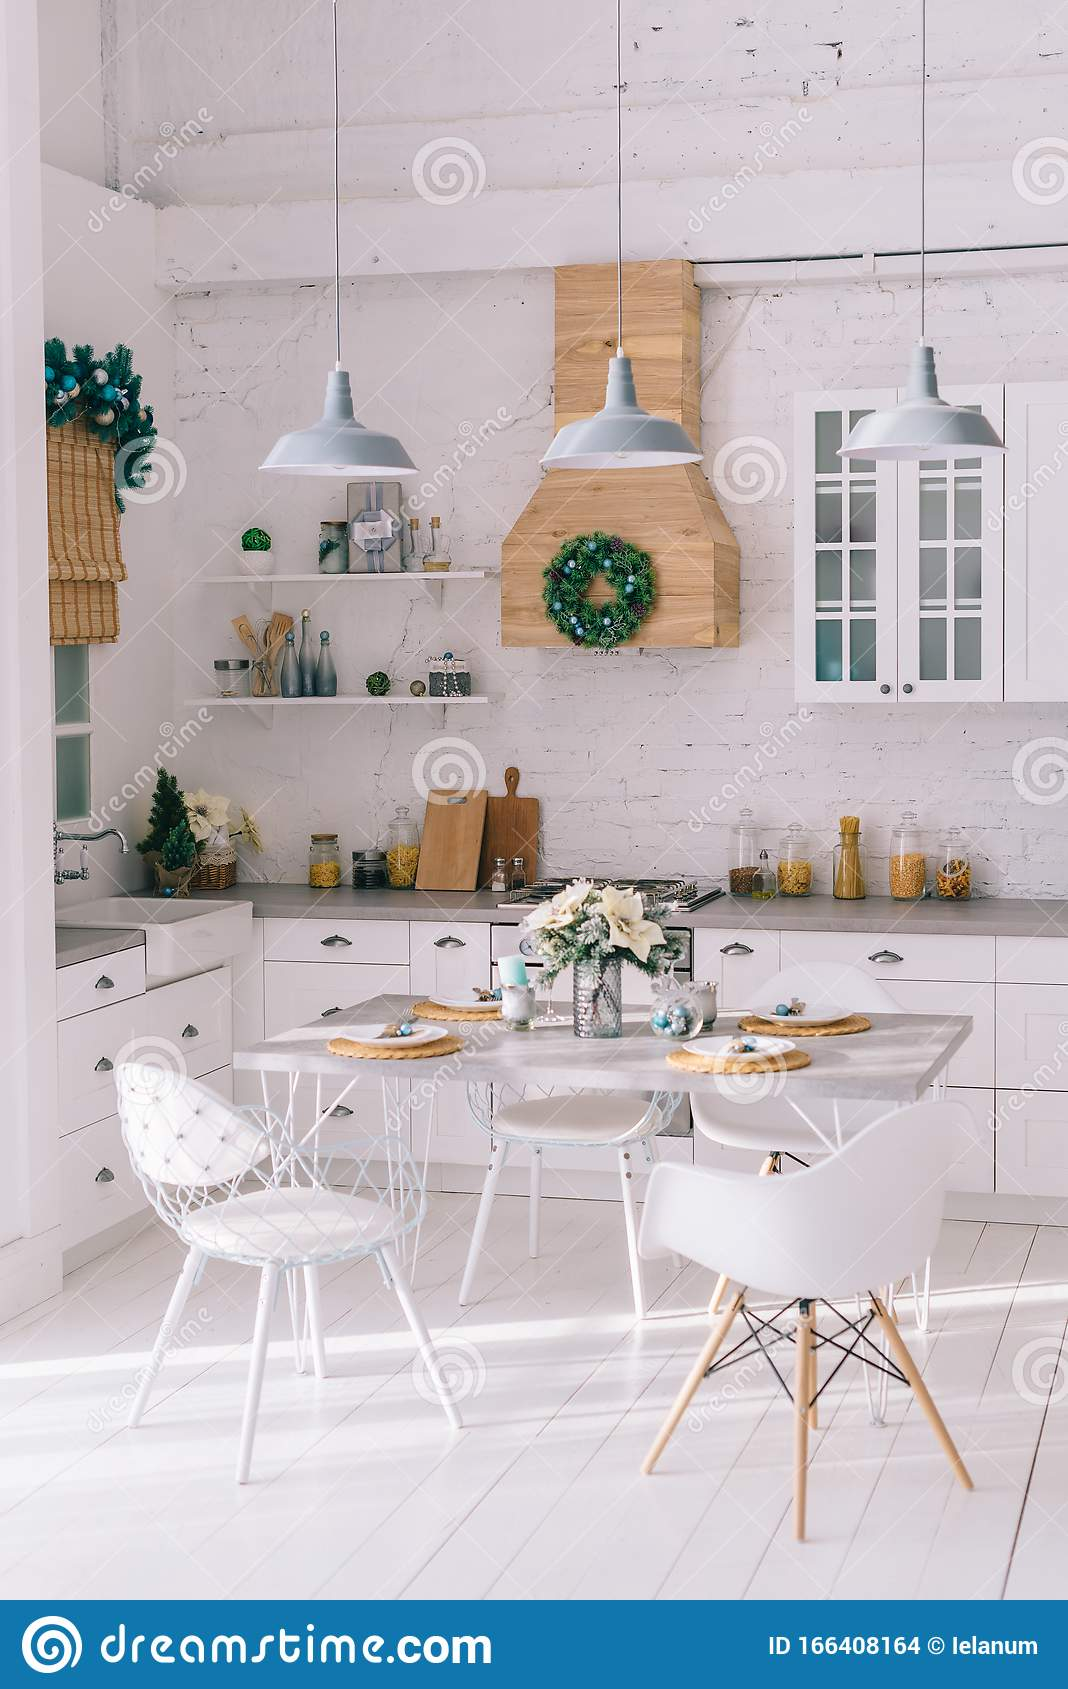 Interior Of A Bright Modern Kitchen In Vintage Style Decorated With Christmas Decor Stock Photo Image Of Luxury Domestic 166408164